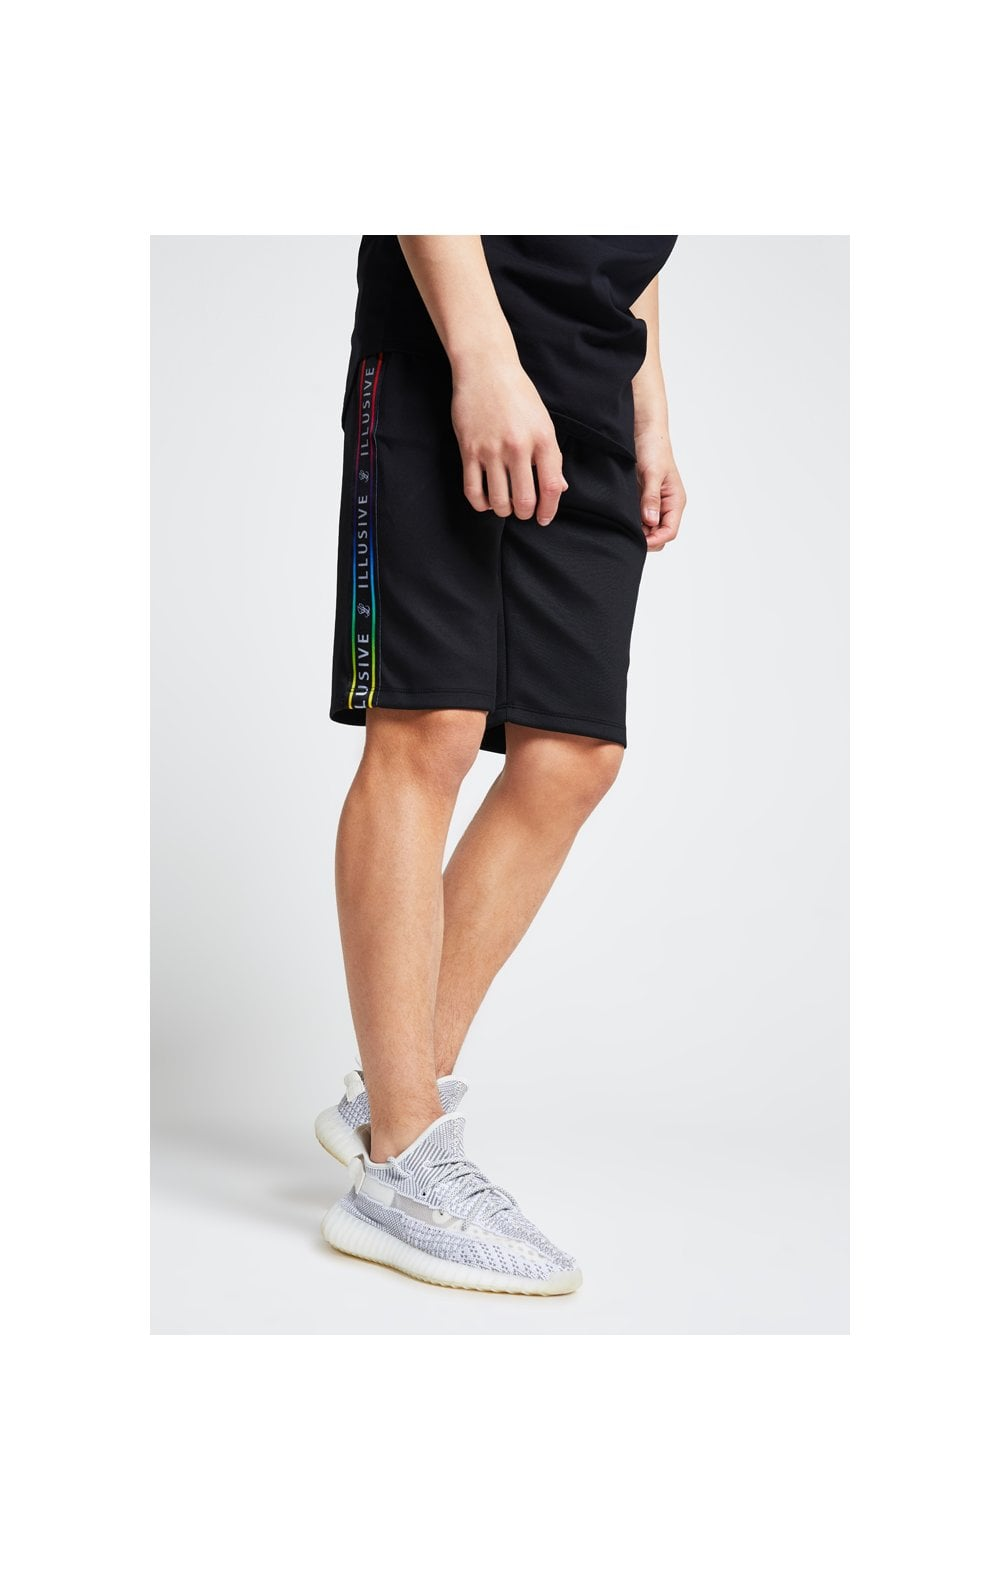 Illusive London Tape Jersey Shorts - Black (2)